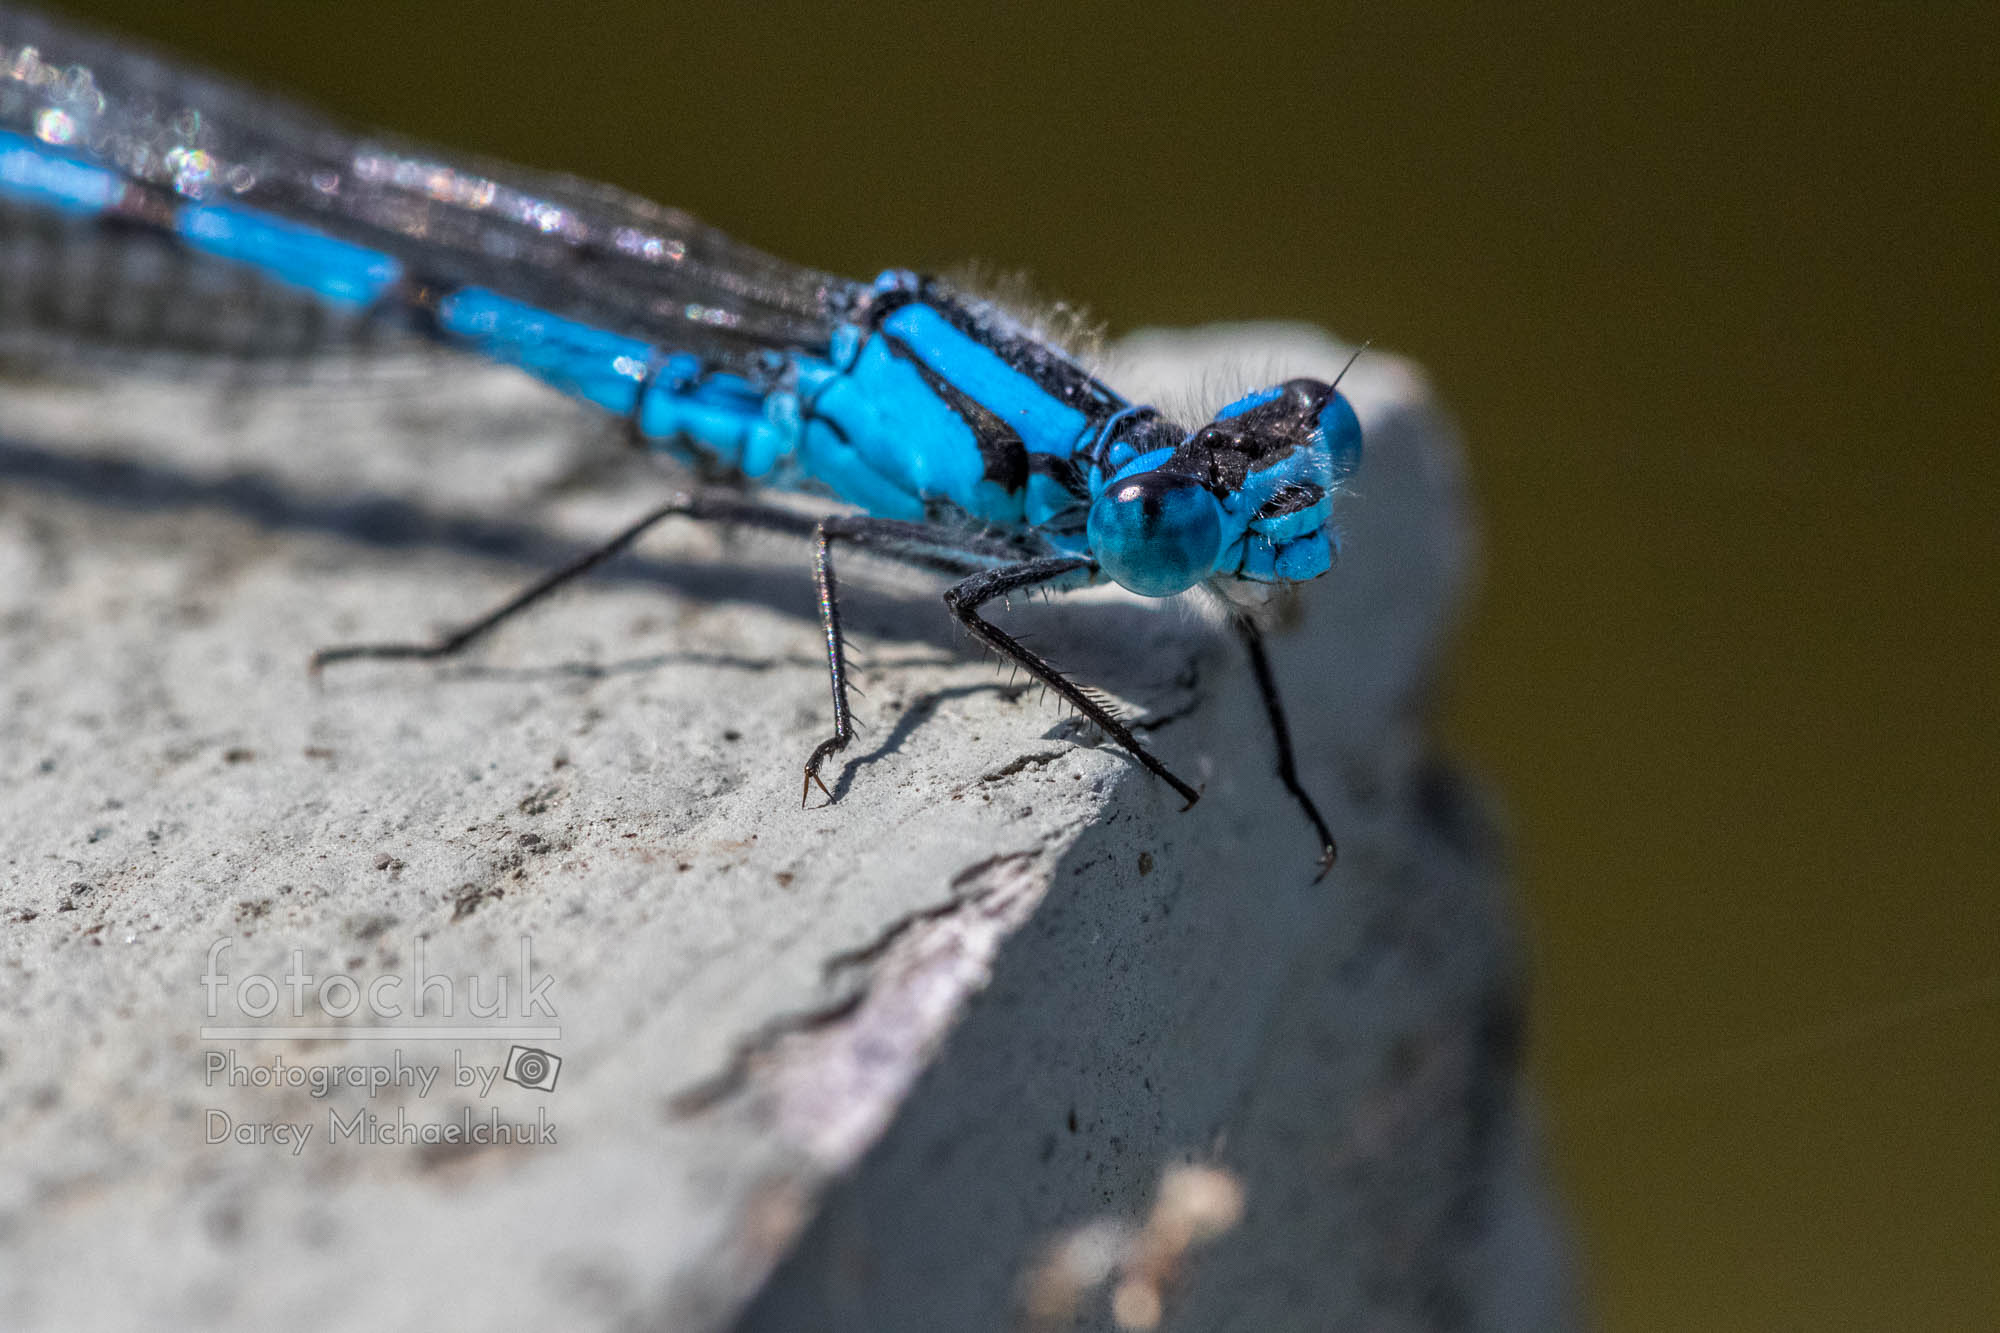 Tiny Blue Dragonfly Rests